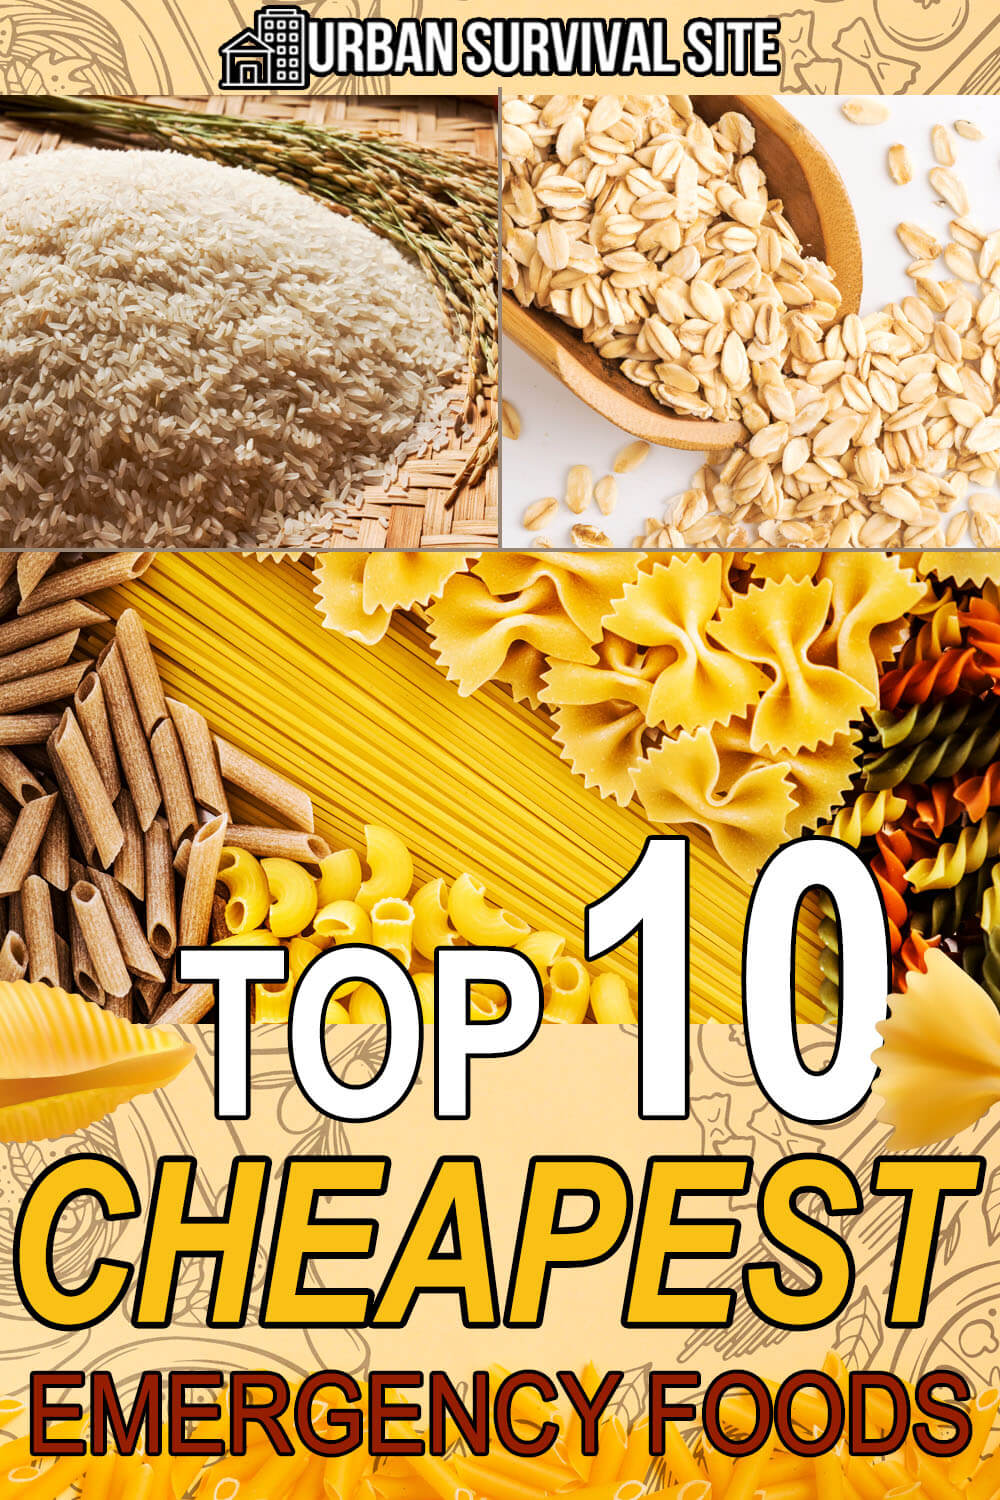 Top 10 Cheapest Emergency Foods